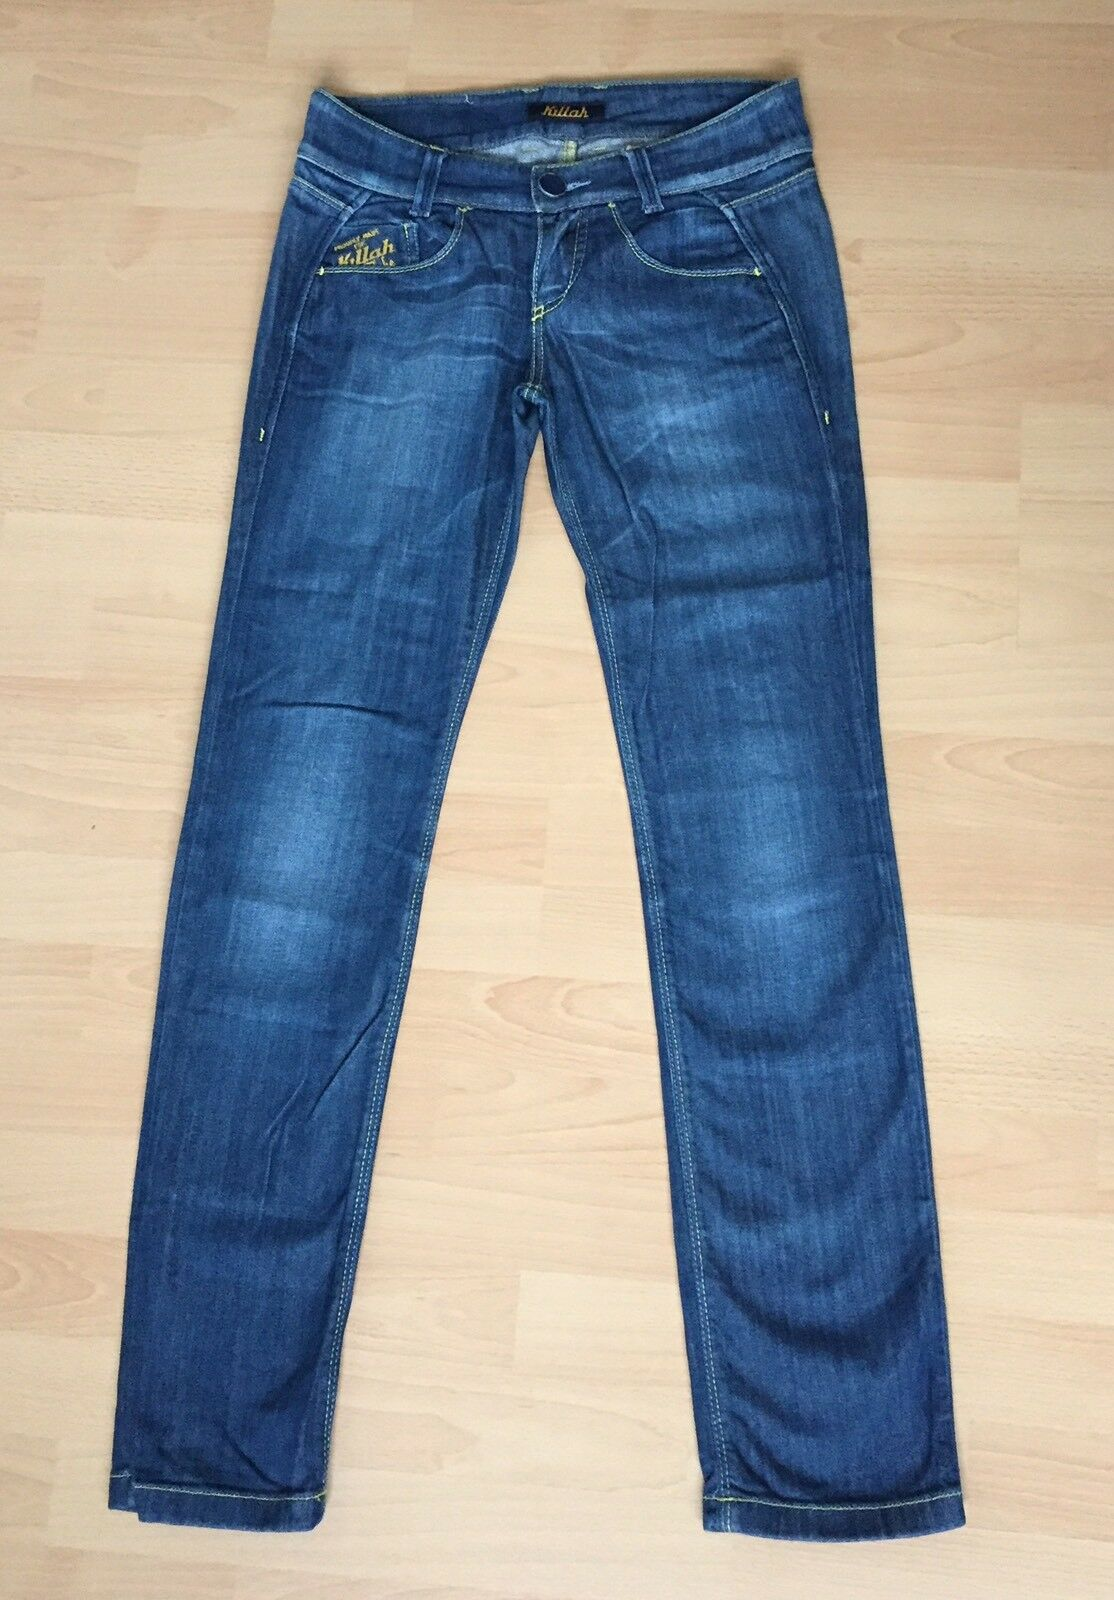 Damenjeans Killah Killah Killah Model Ebel Trousers W27 | Lass unsere Waren in die Welt gehen